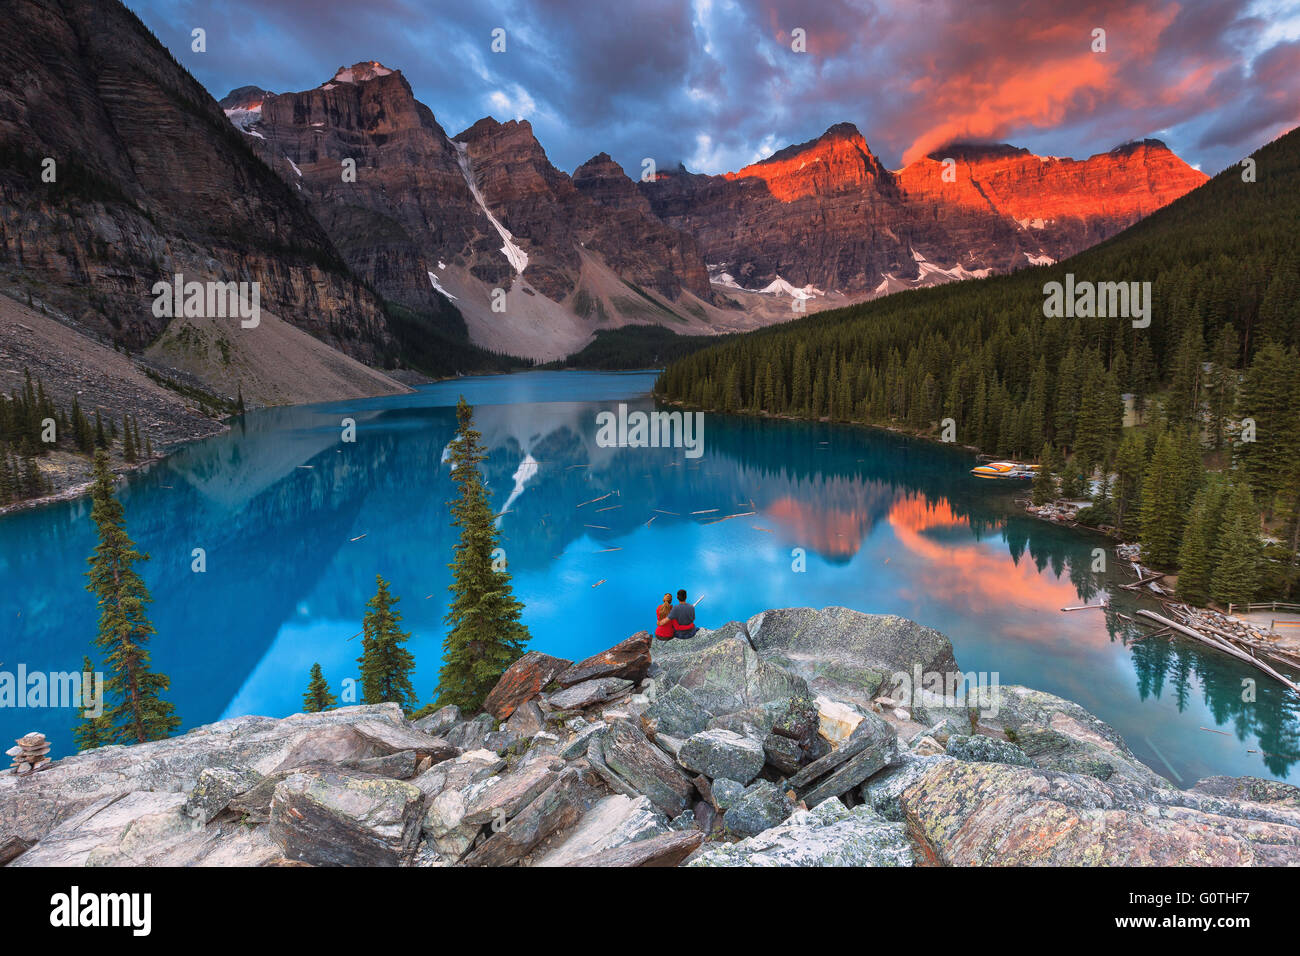 Un jeune couple au lac Moraine par Sunrise. Le parc national Banff, Alberta, Canada. Banque D'Images